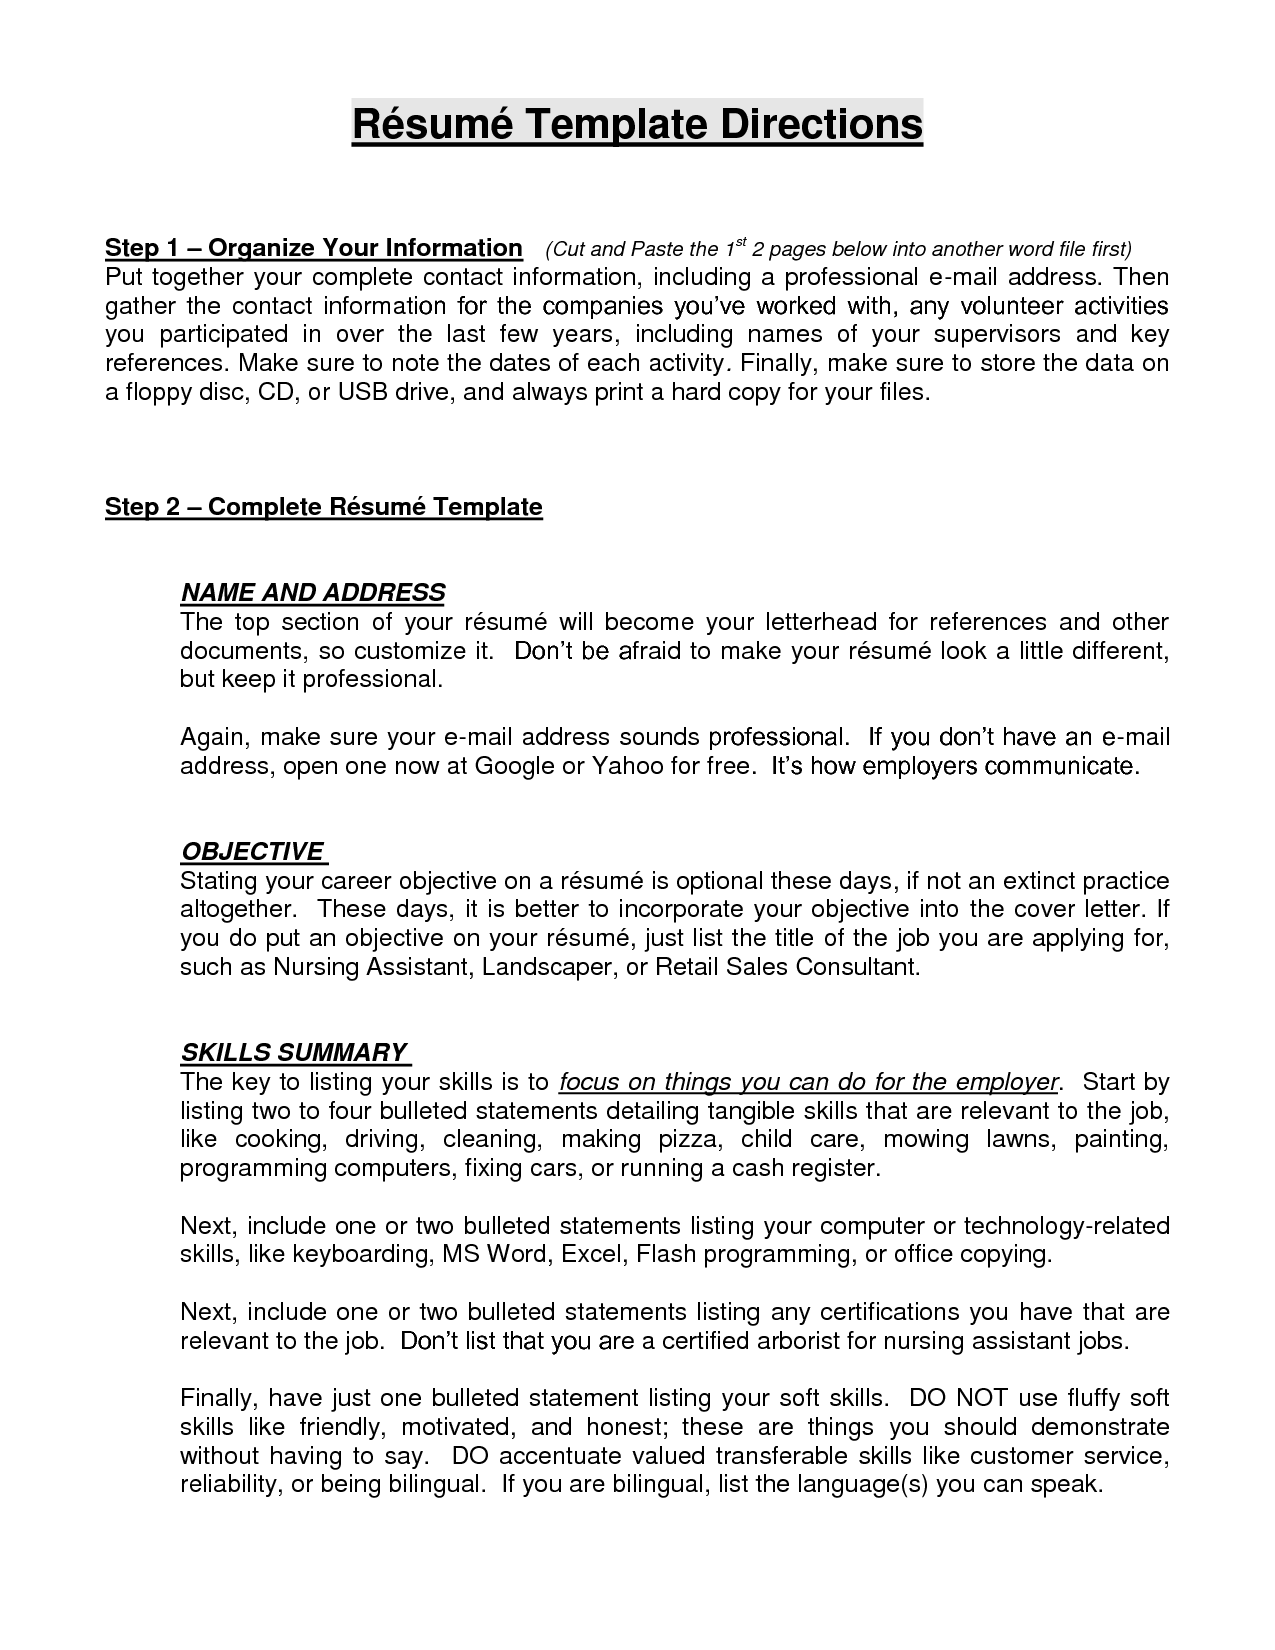 example of objective statements for resumes template example of objective statements for resumes